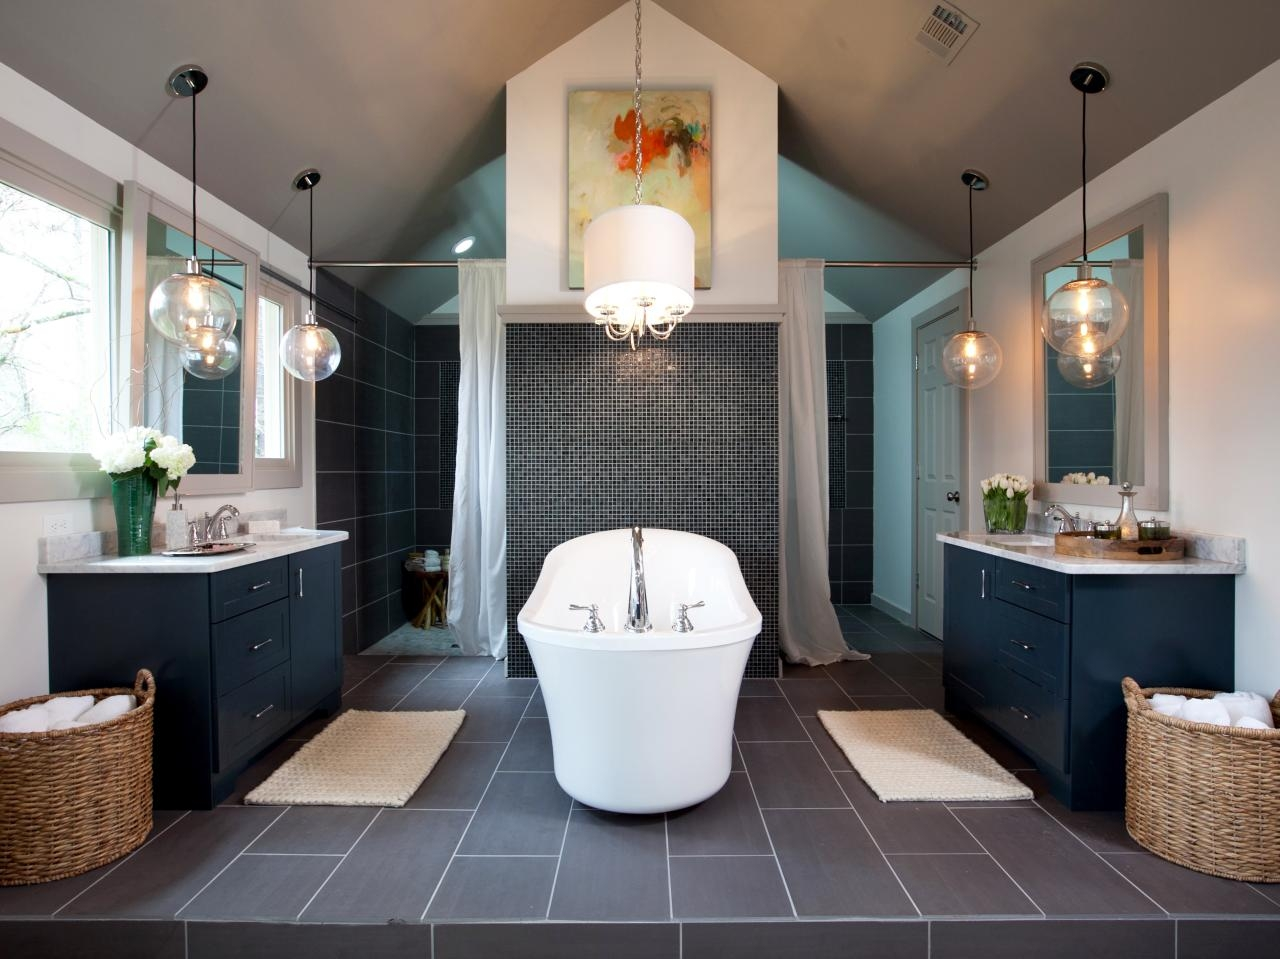 Bathrooms Modern Bathroom With Oval Modern Bathtub And Wooden Pertaining To Modern Bathroom Chandeliers (View 7 of 15)